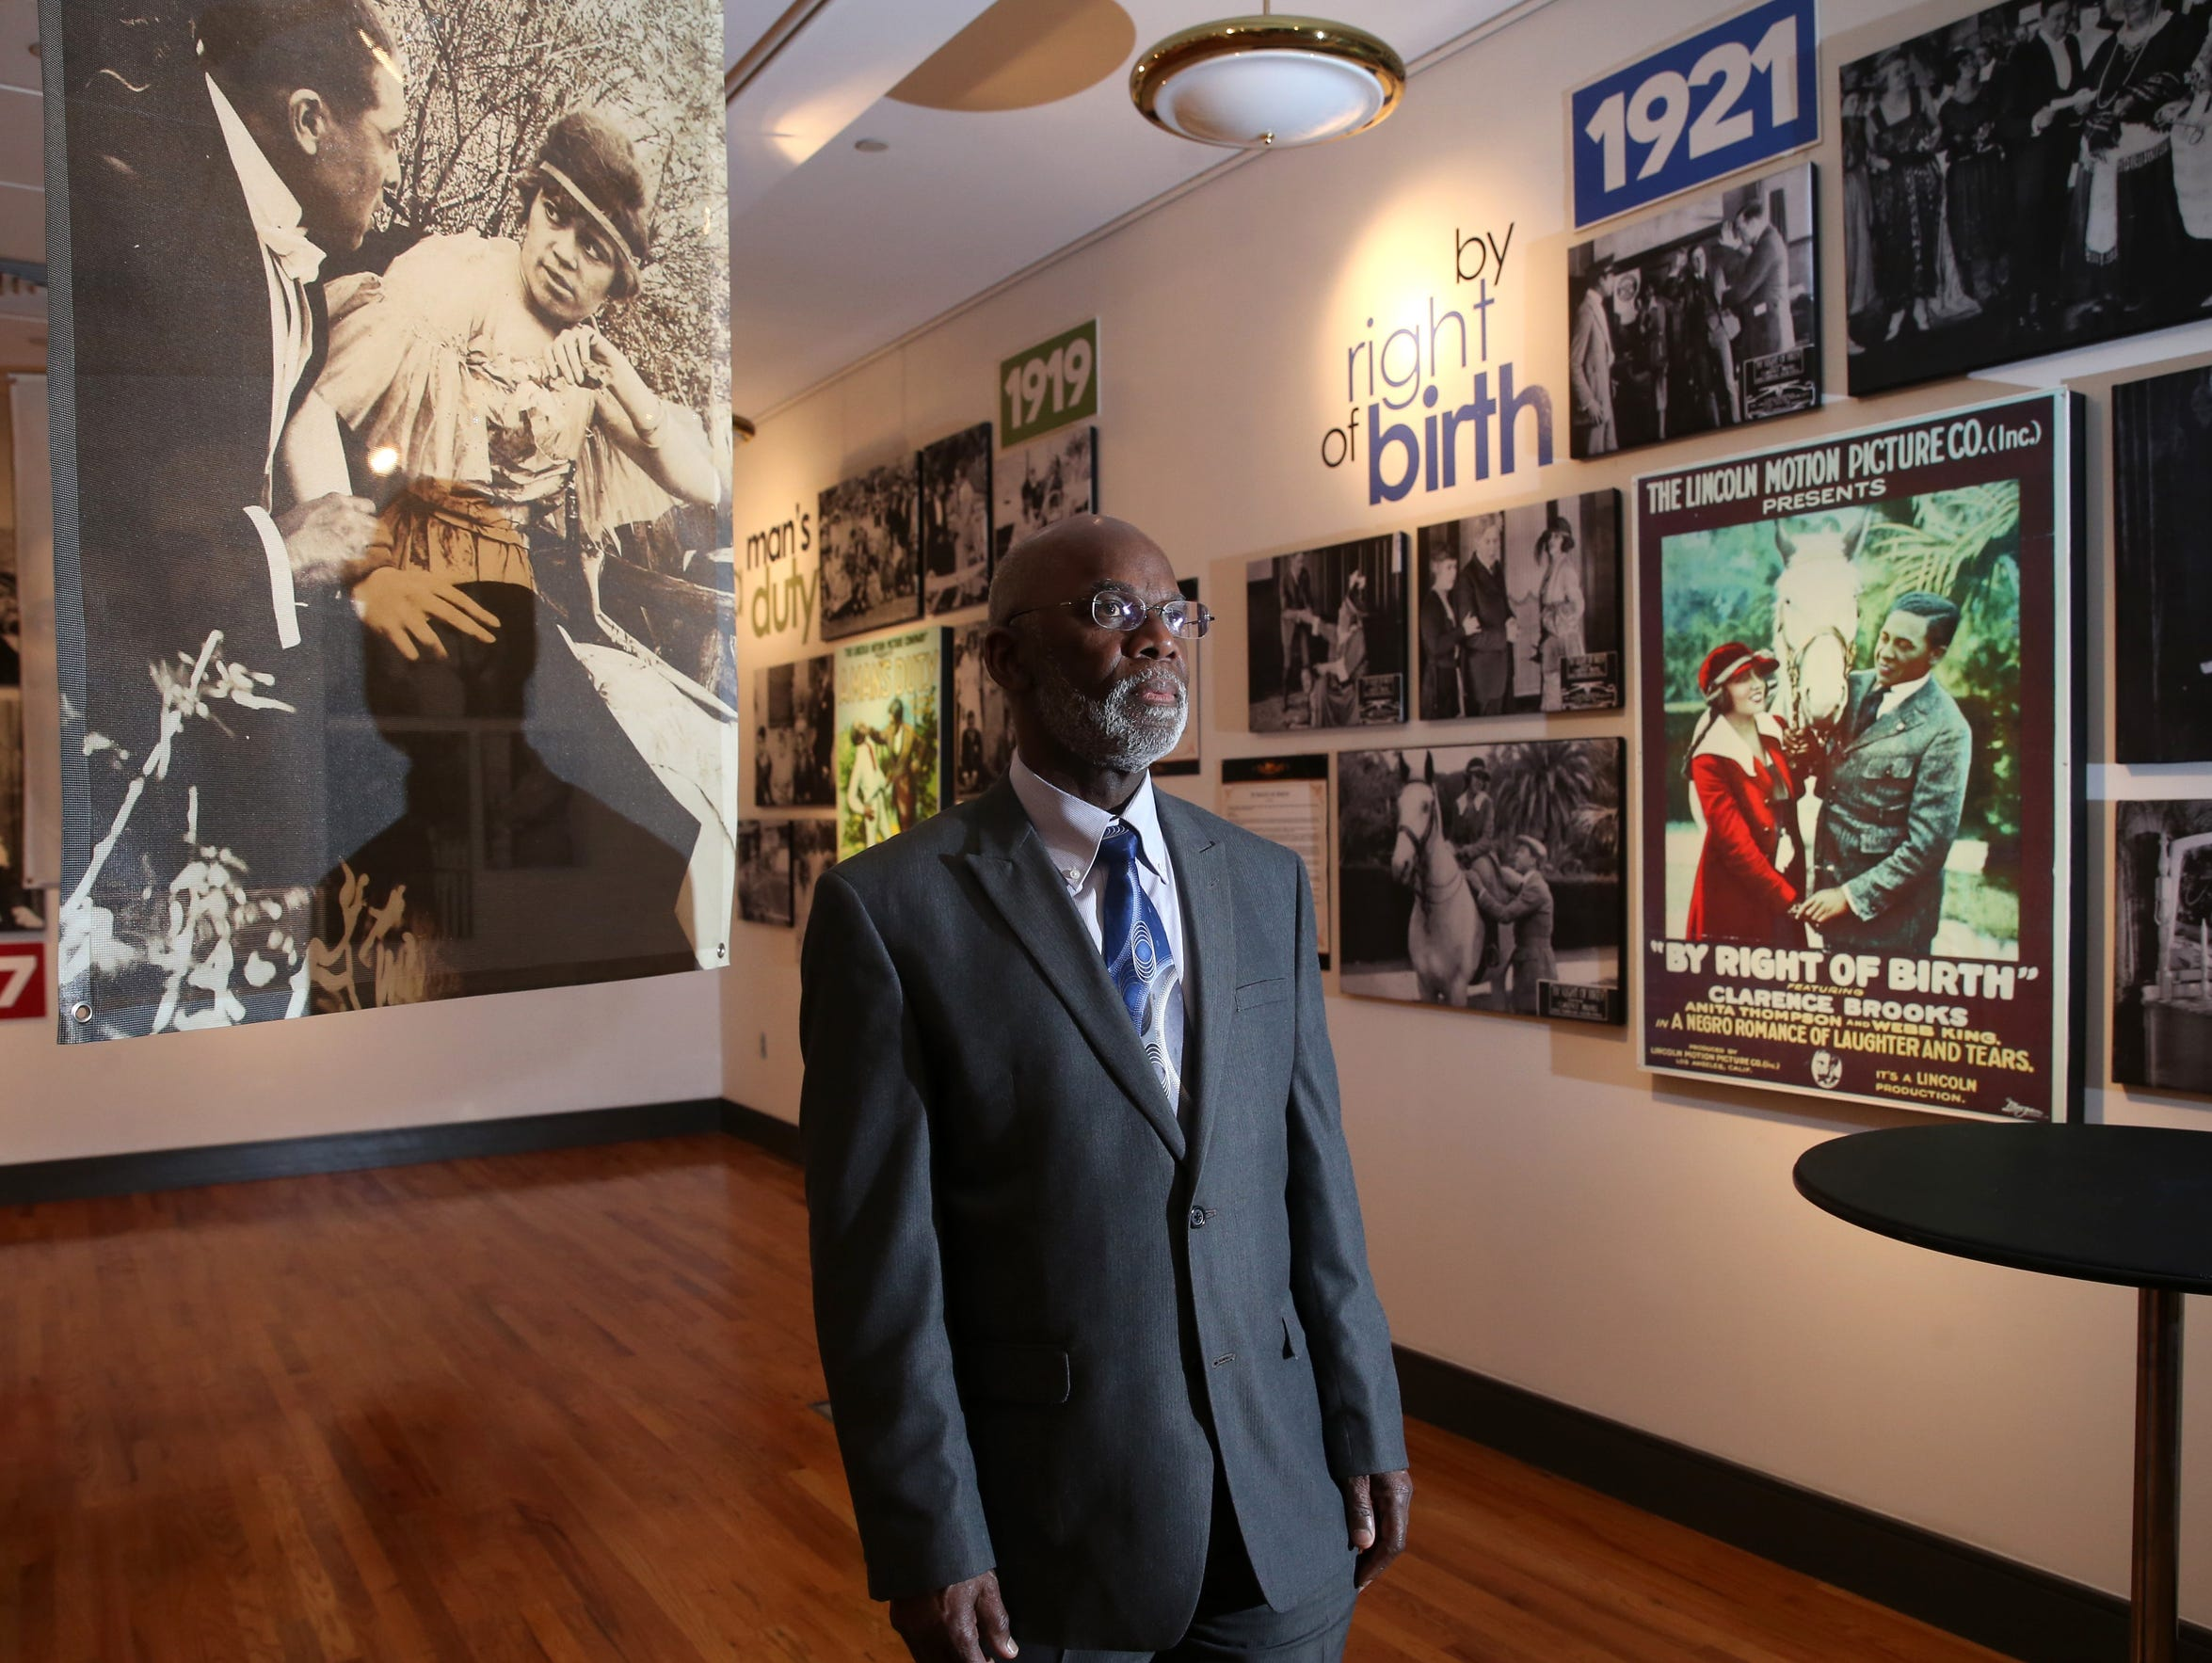 Clint Byrd stands amongst the memorabilia from the